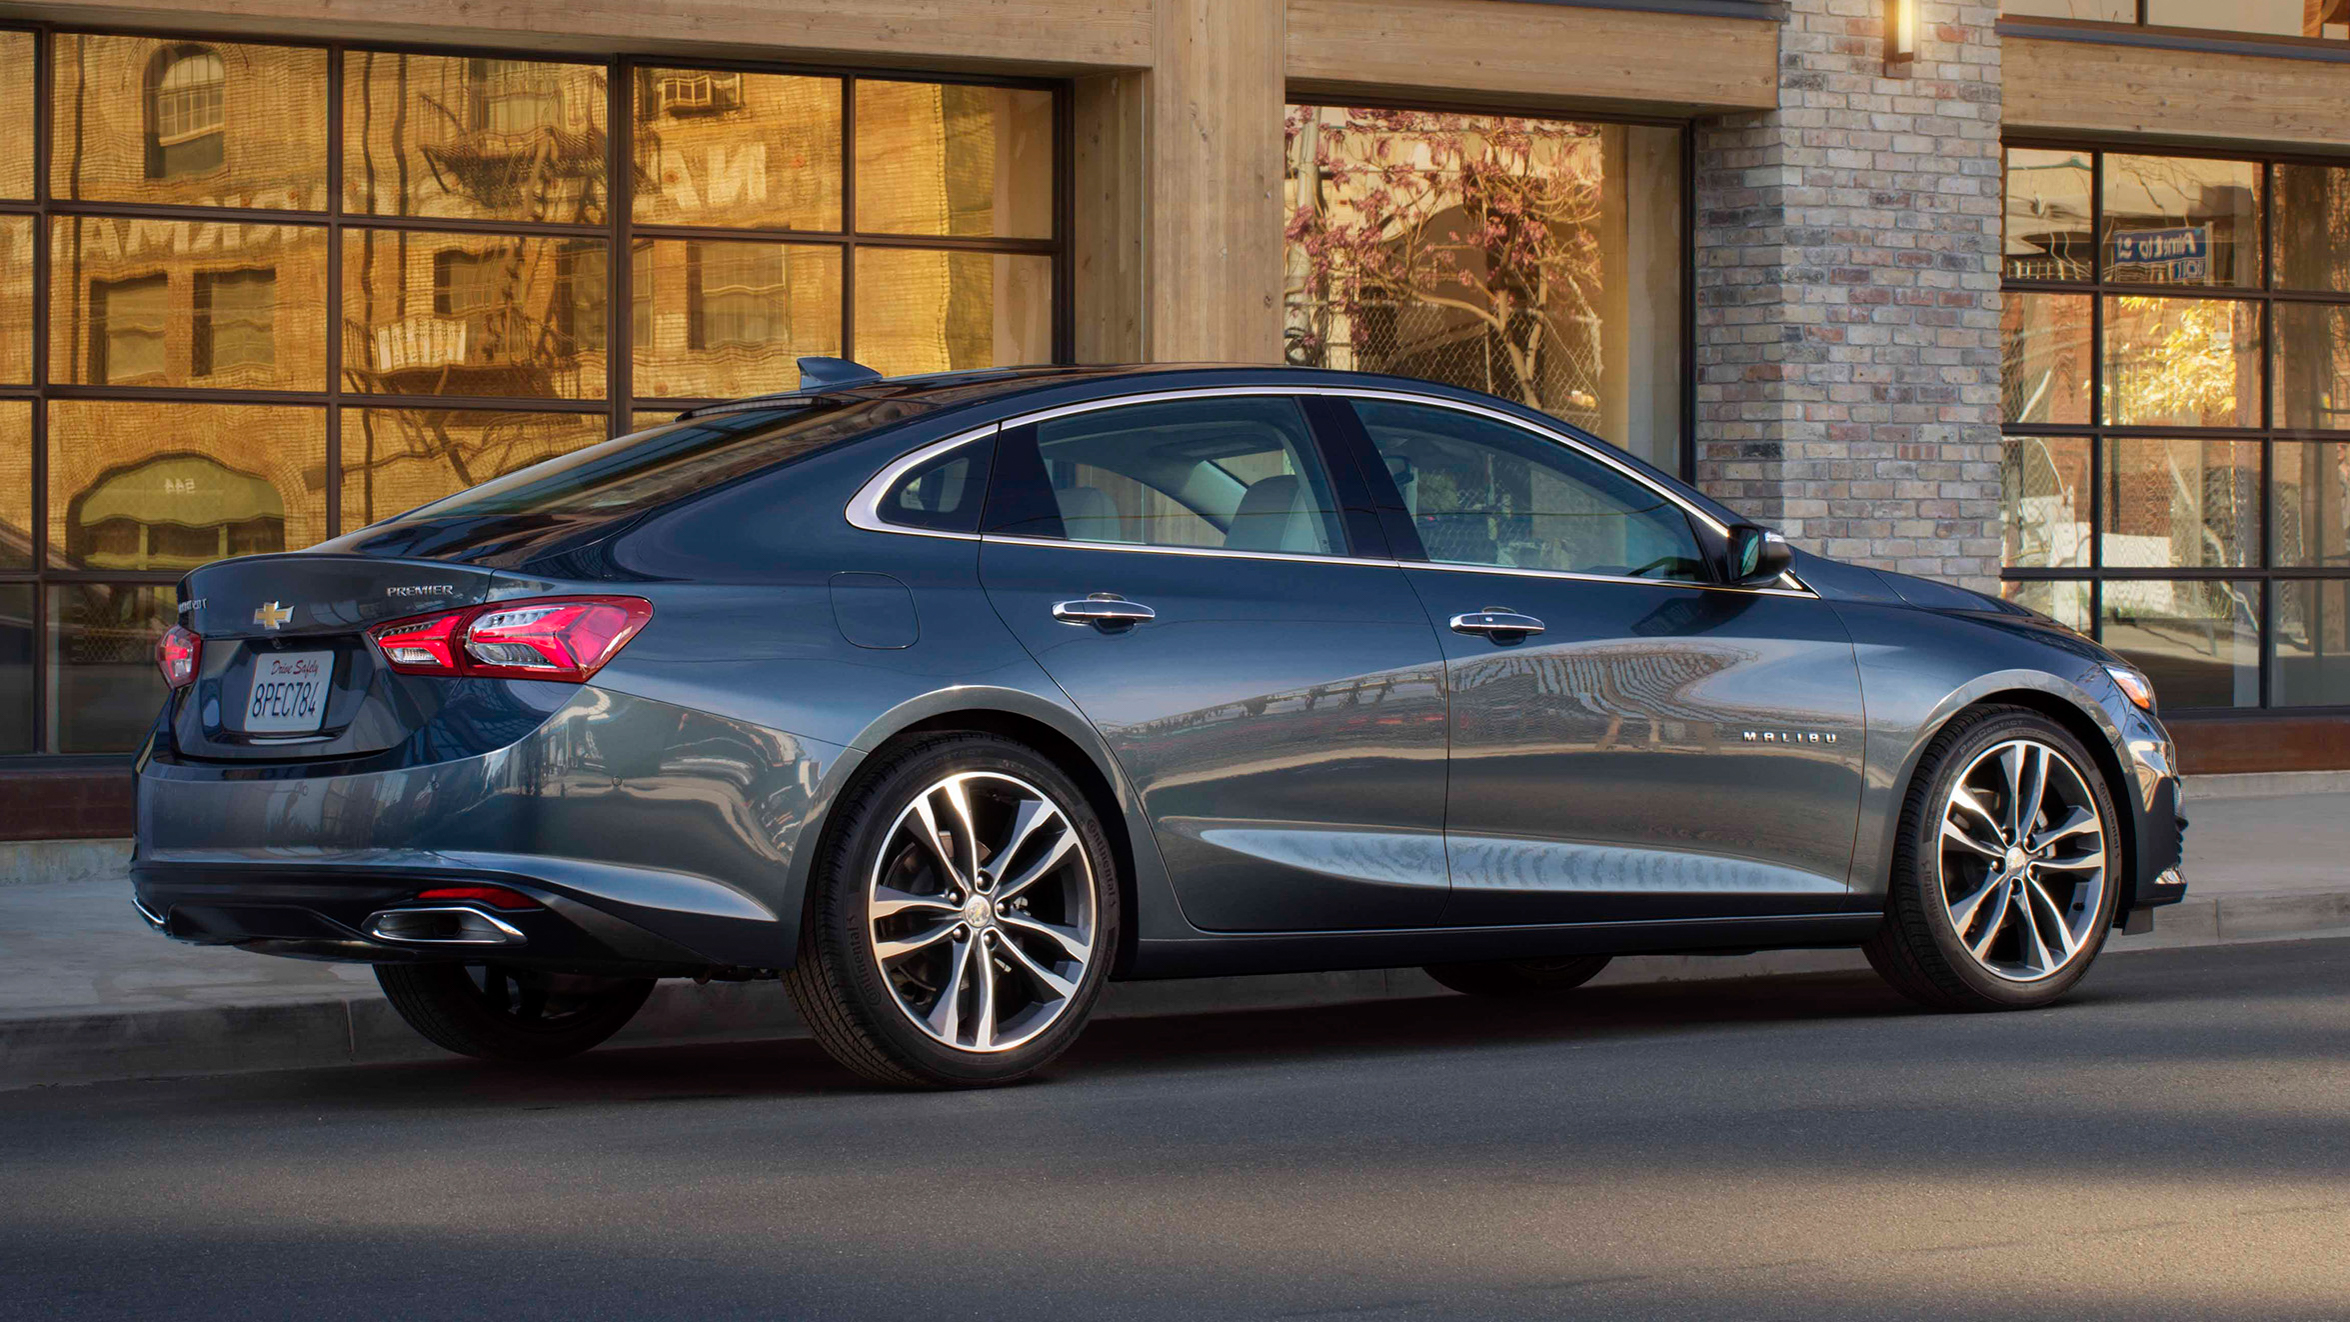 2018 Chevy Malibu Ss >> 2019 Chevrolet Malibu facelift – new face and RS trim Paul Tan - Image 803737